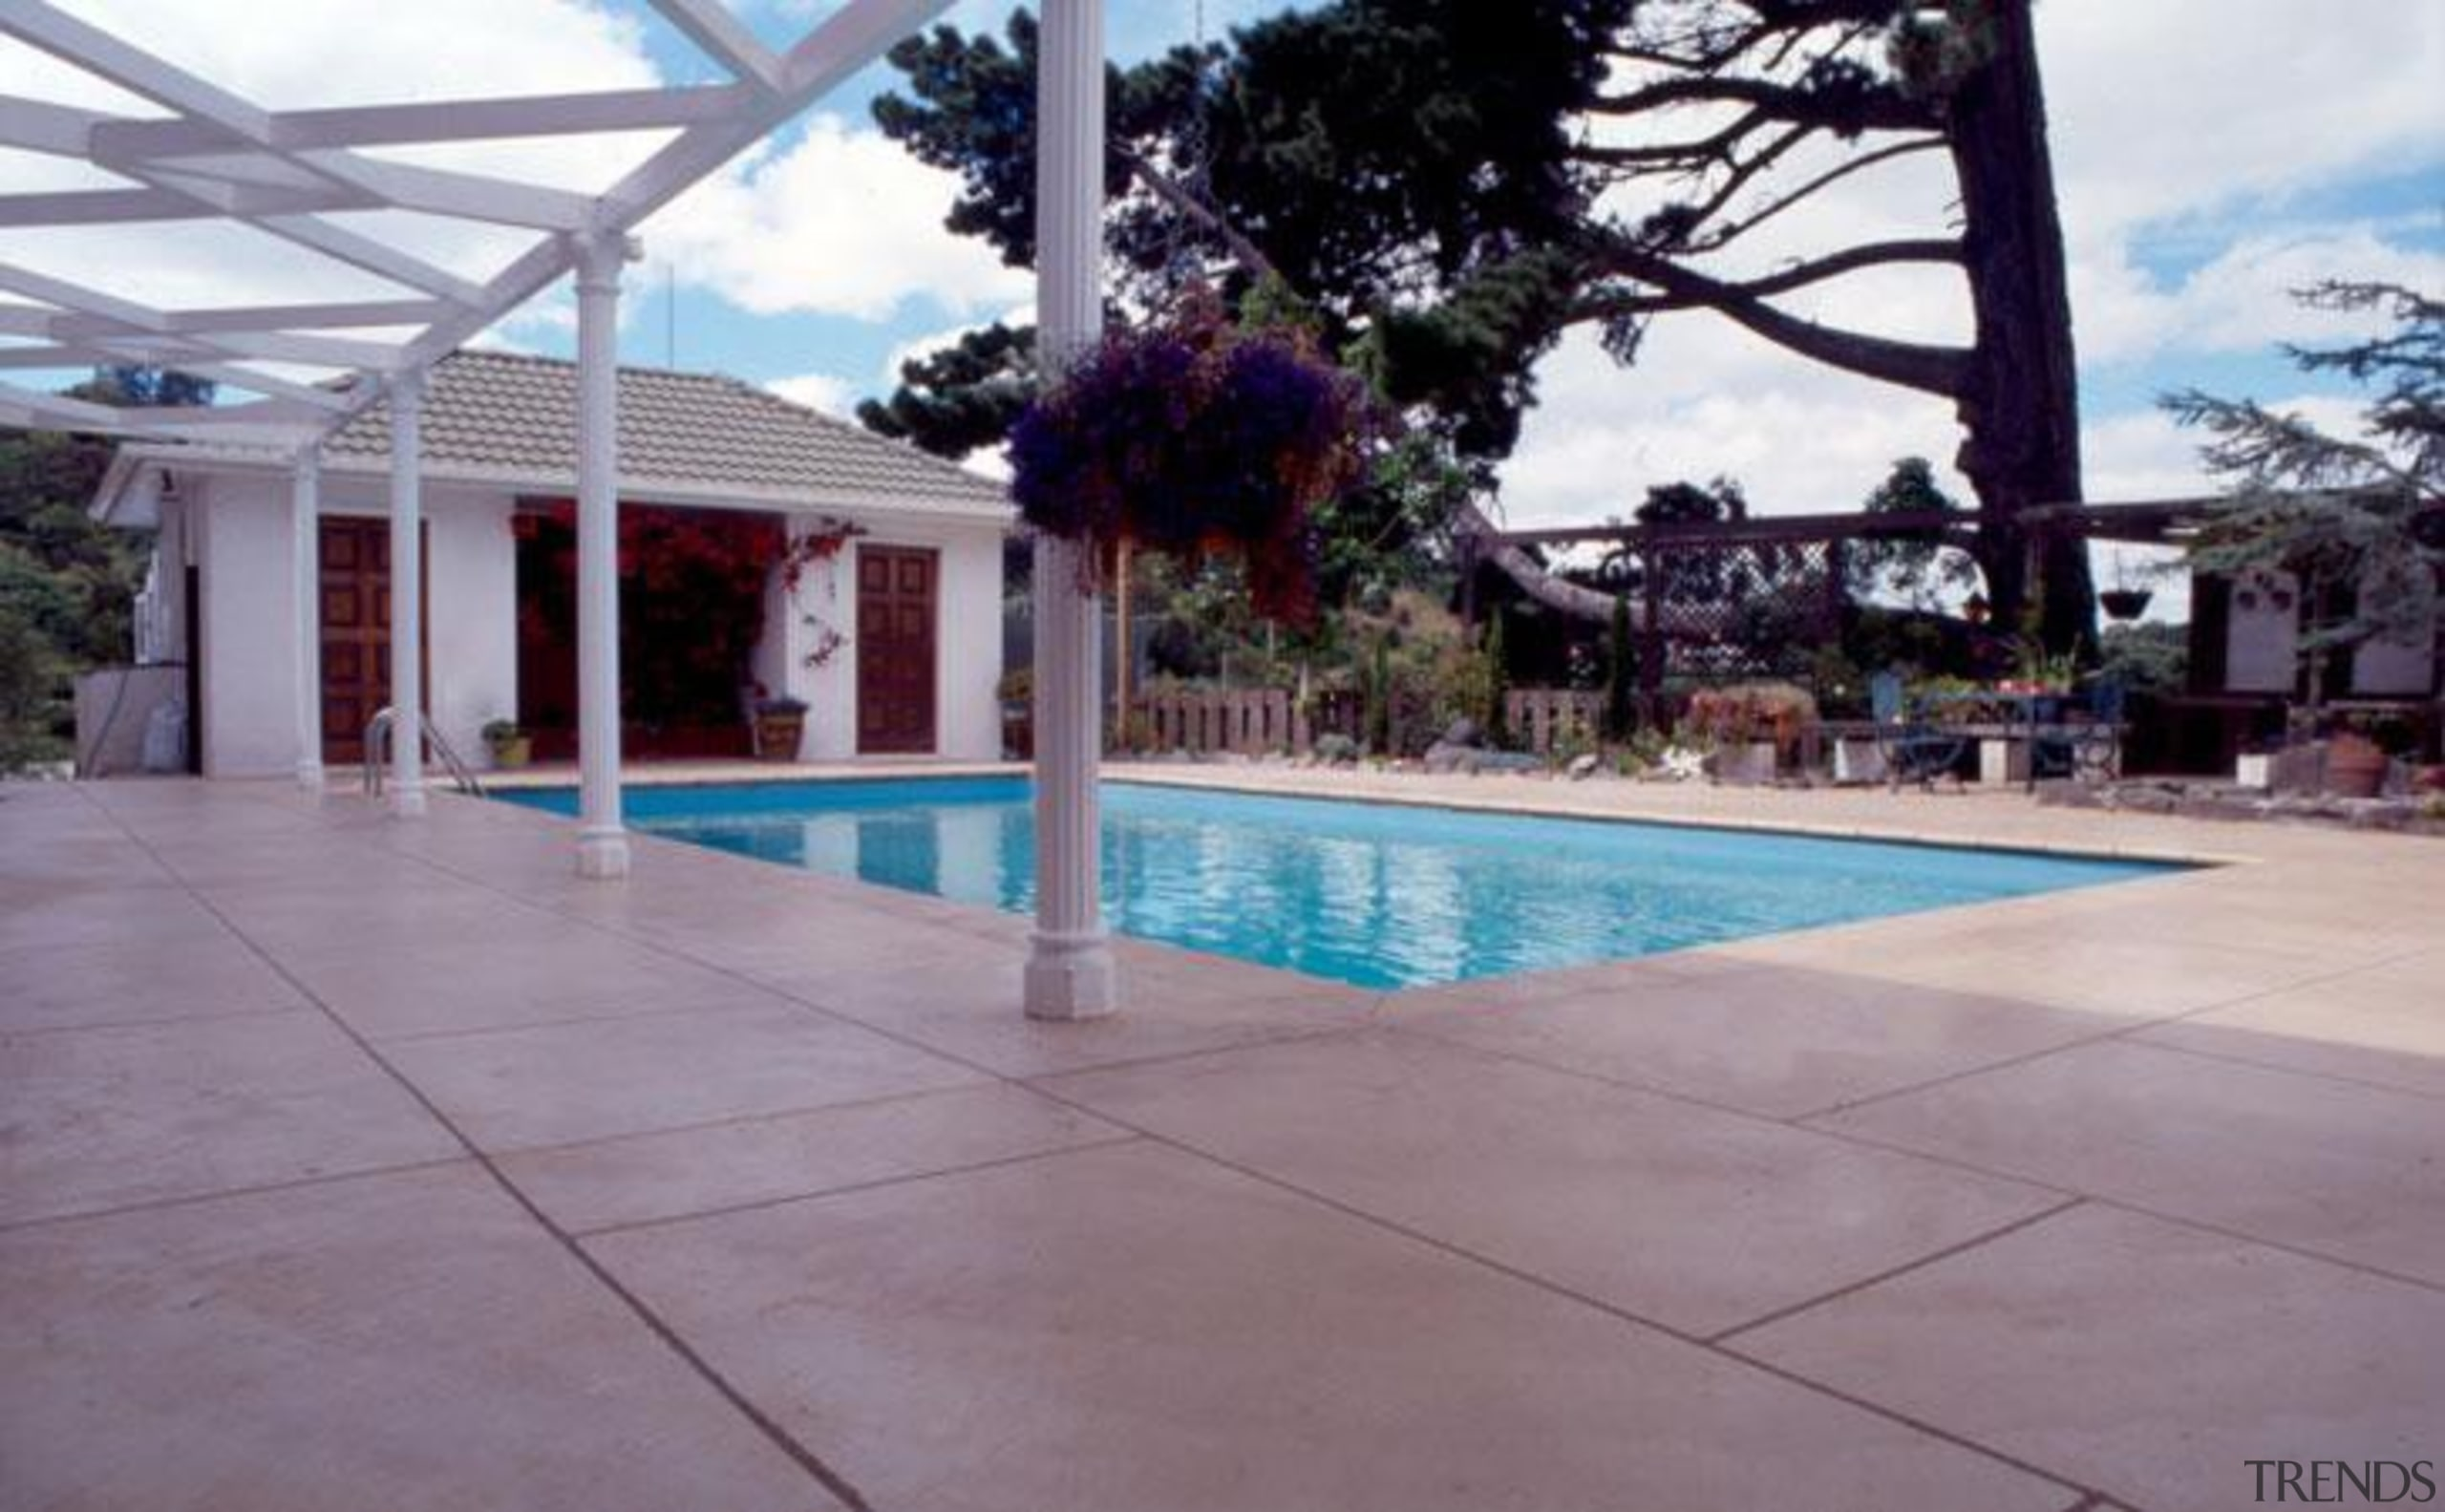 pol0056web.jpg - pol0056web.jpg - area | estate | area, estate, floor, hacienda, house, leisure, outdoor structure, property, real estate, resort, swimming pool, gray